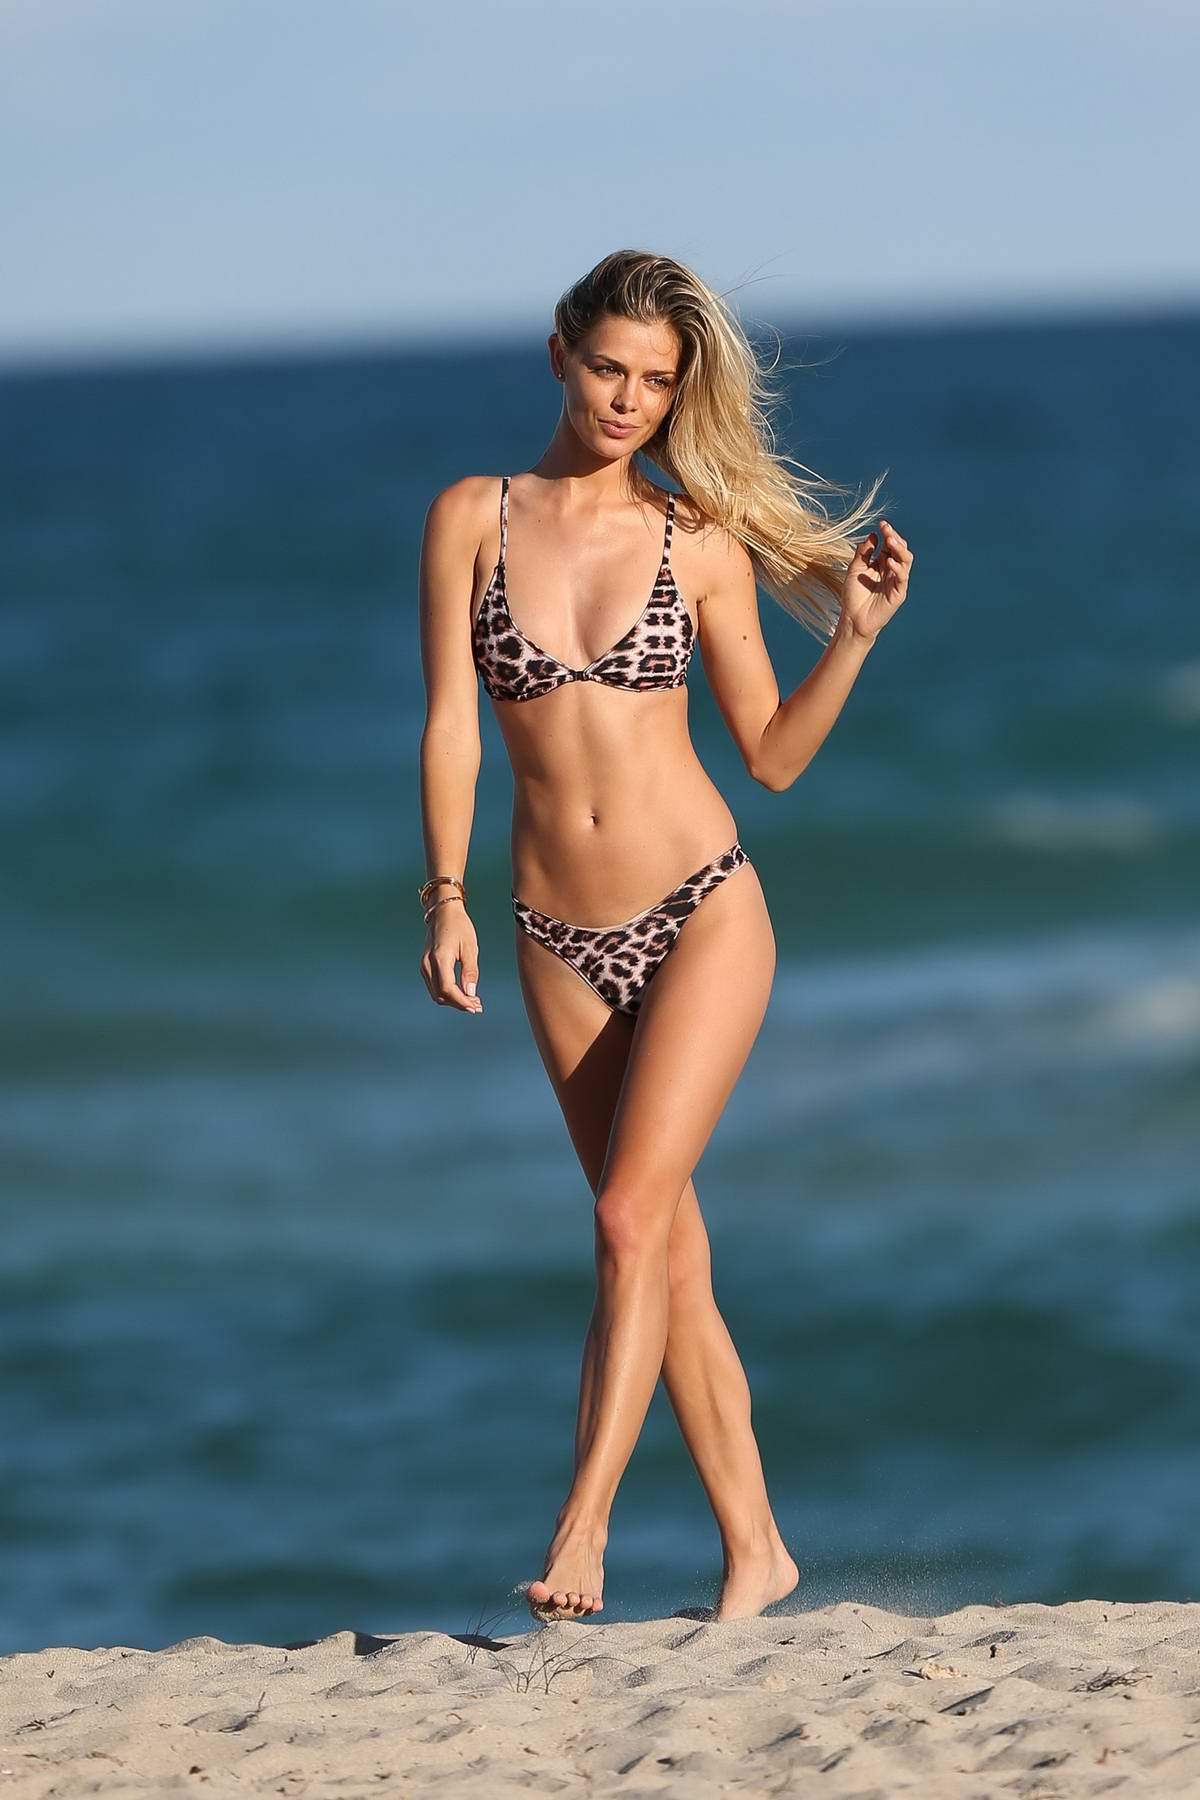 Danielle Knudson in a leopard print bikini during a photo shoot in Miami beach